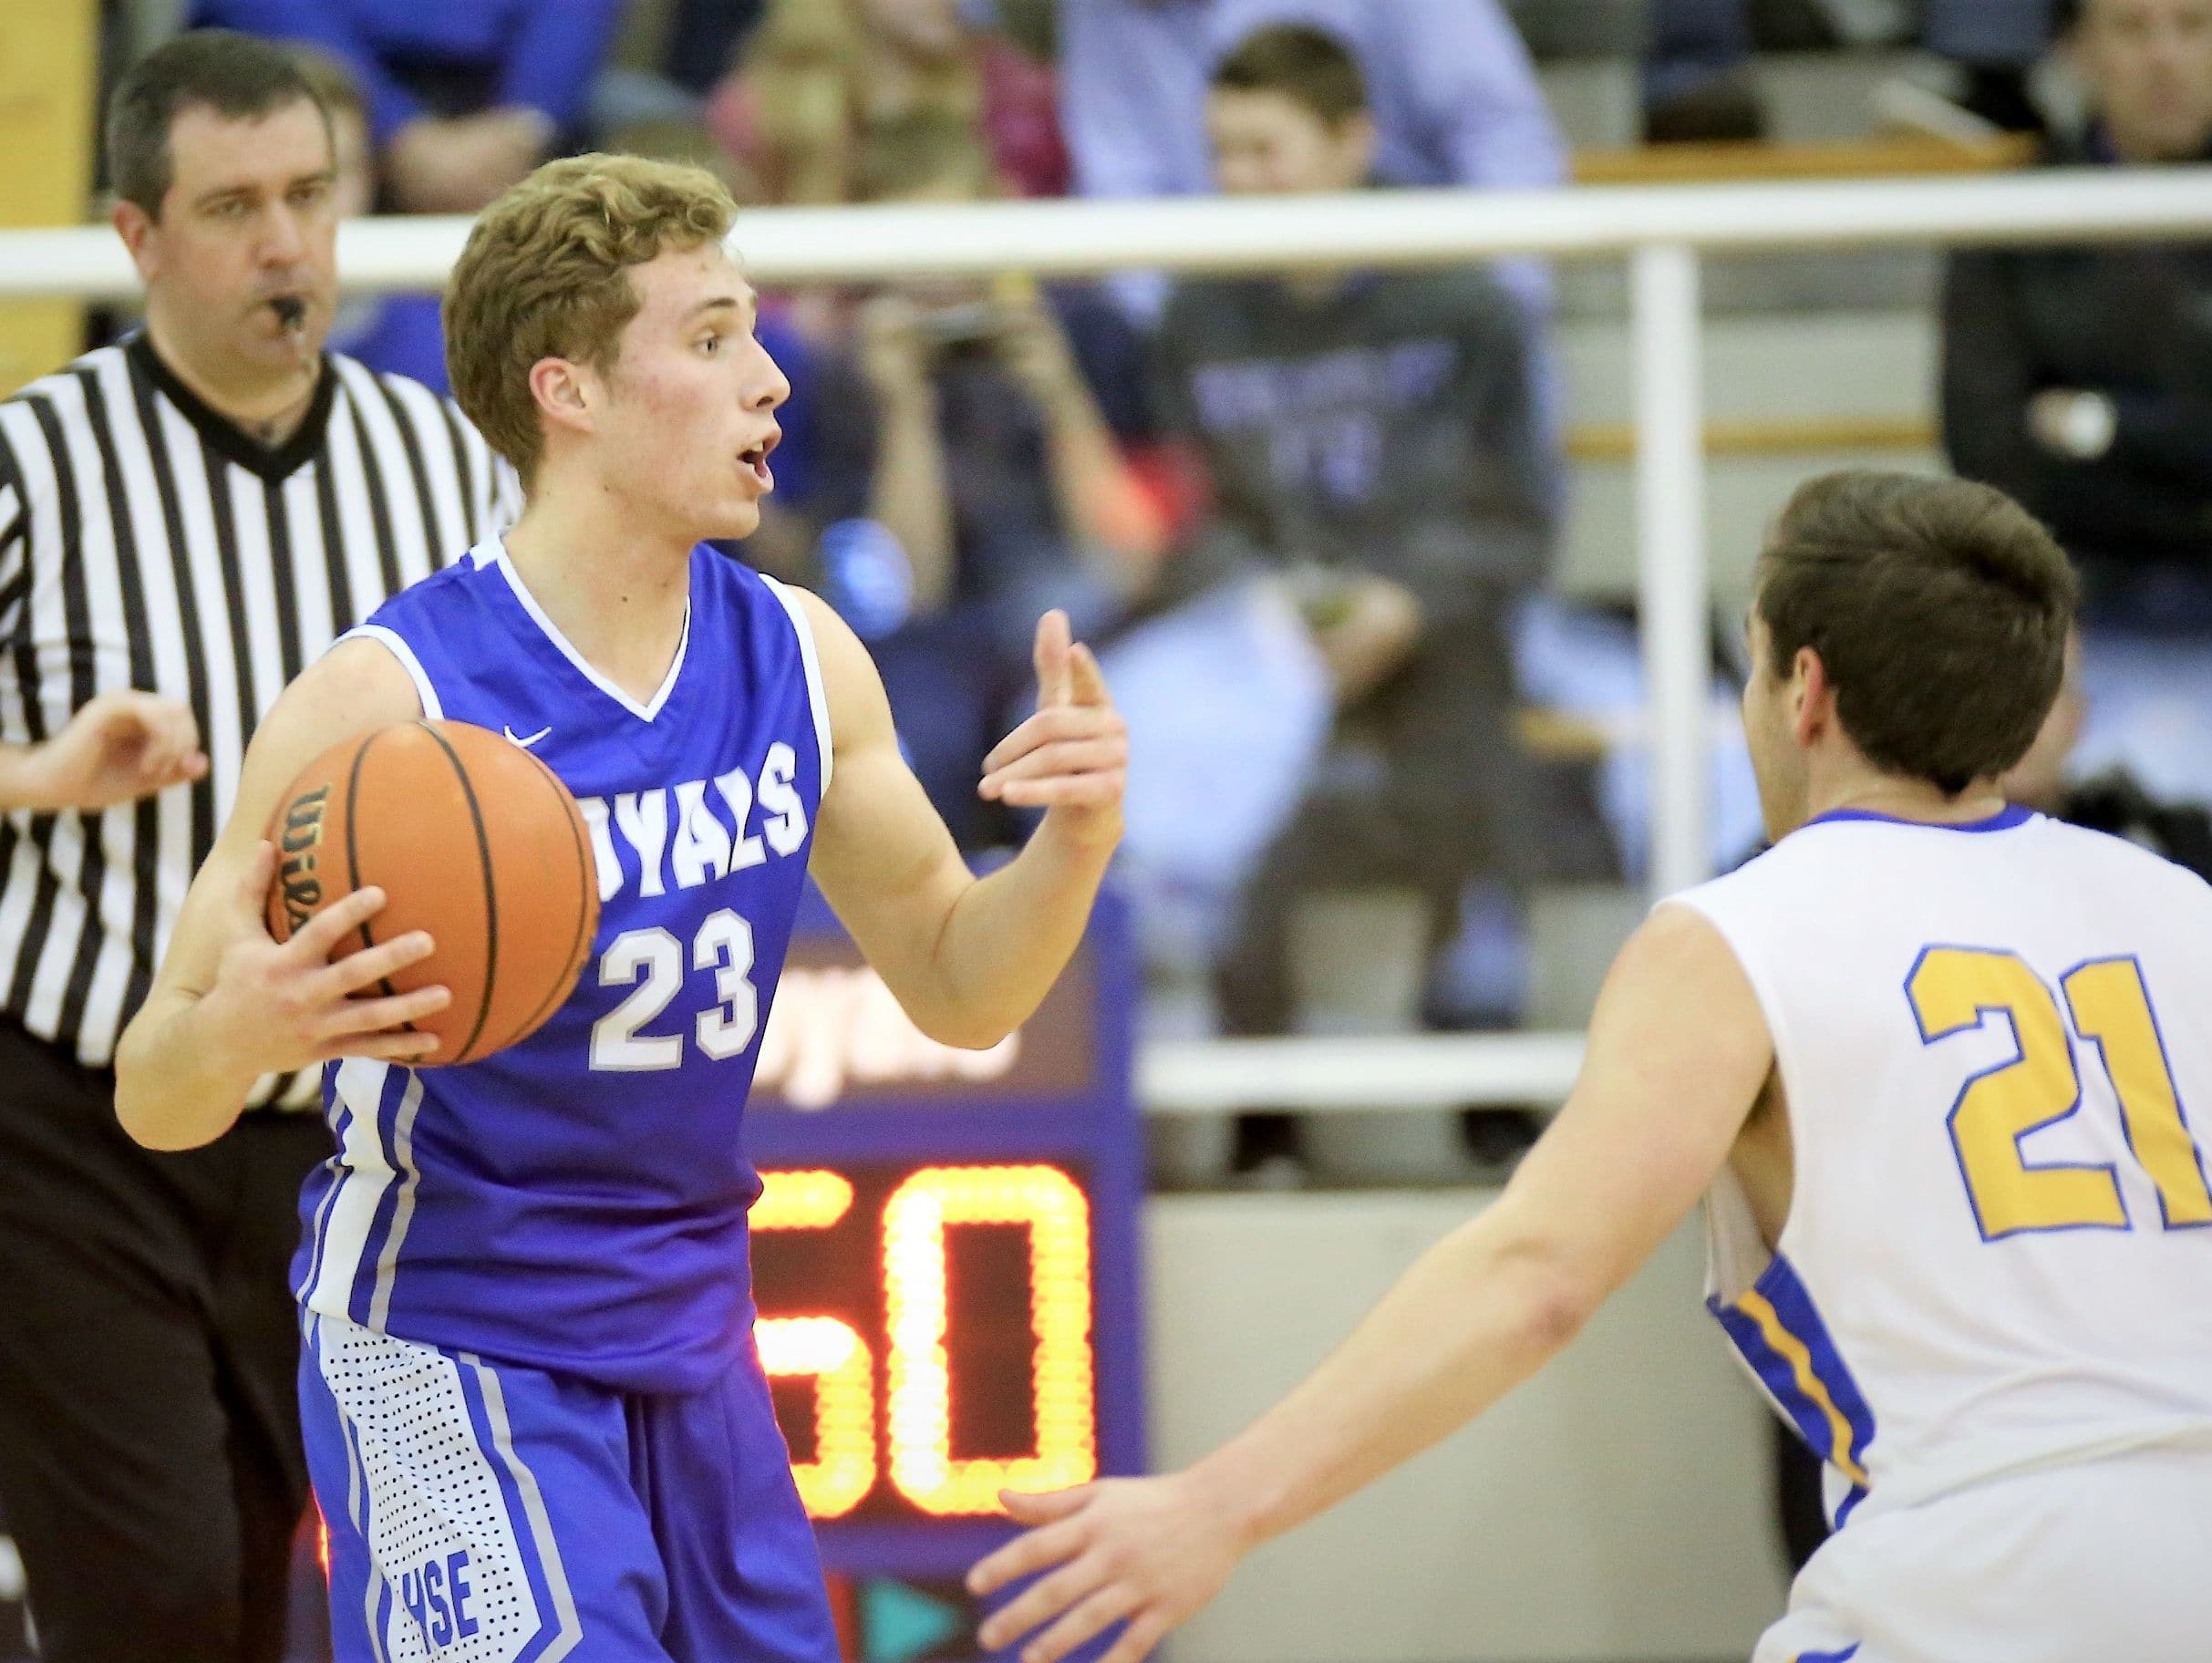 Hamilton Southeastern's Connor Rotterman looks for an open teammate in the Royals' win over Carmel on Friday night.